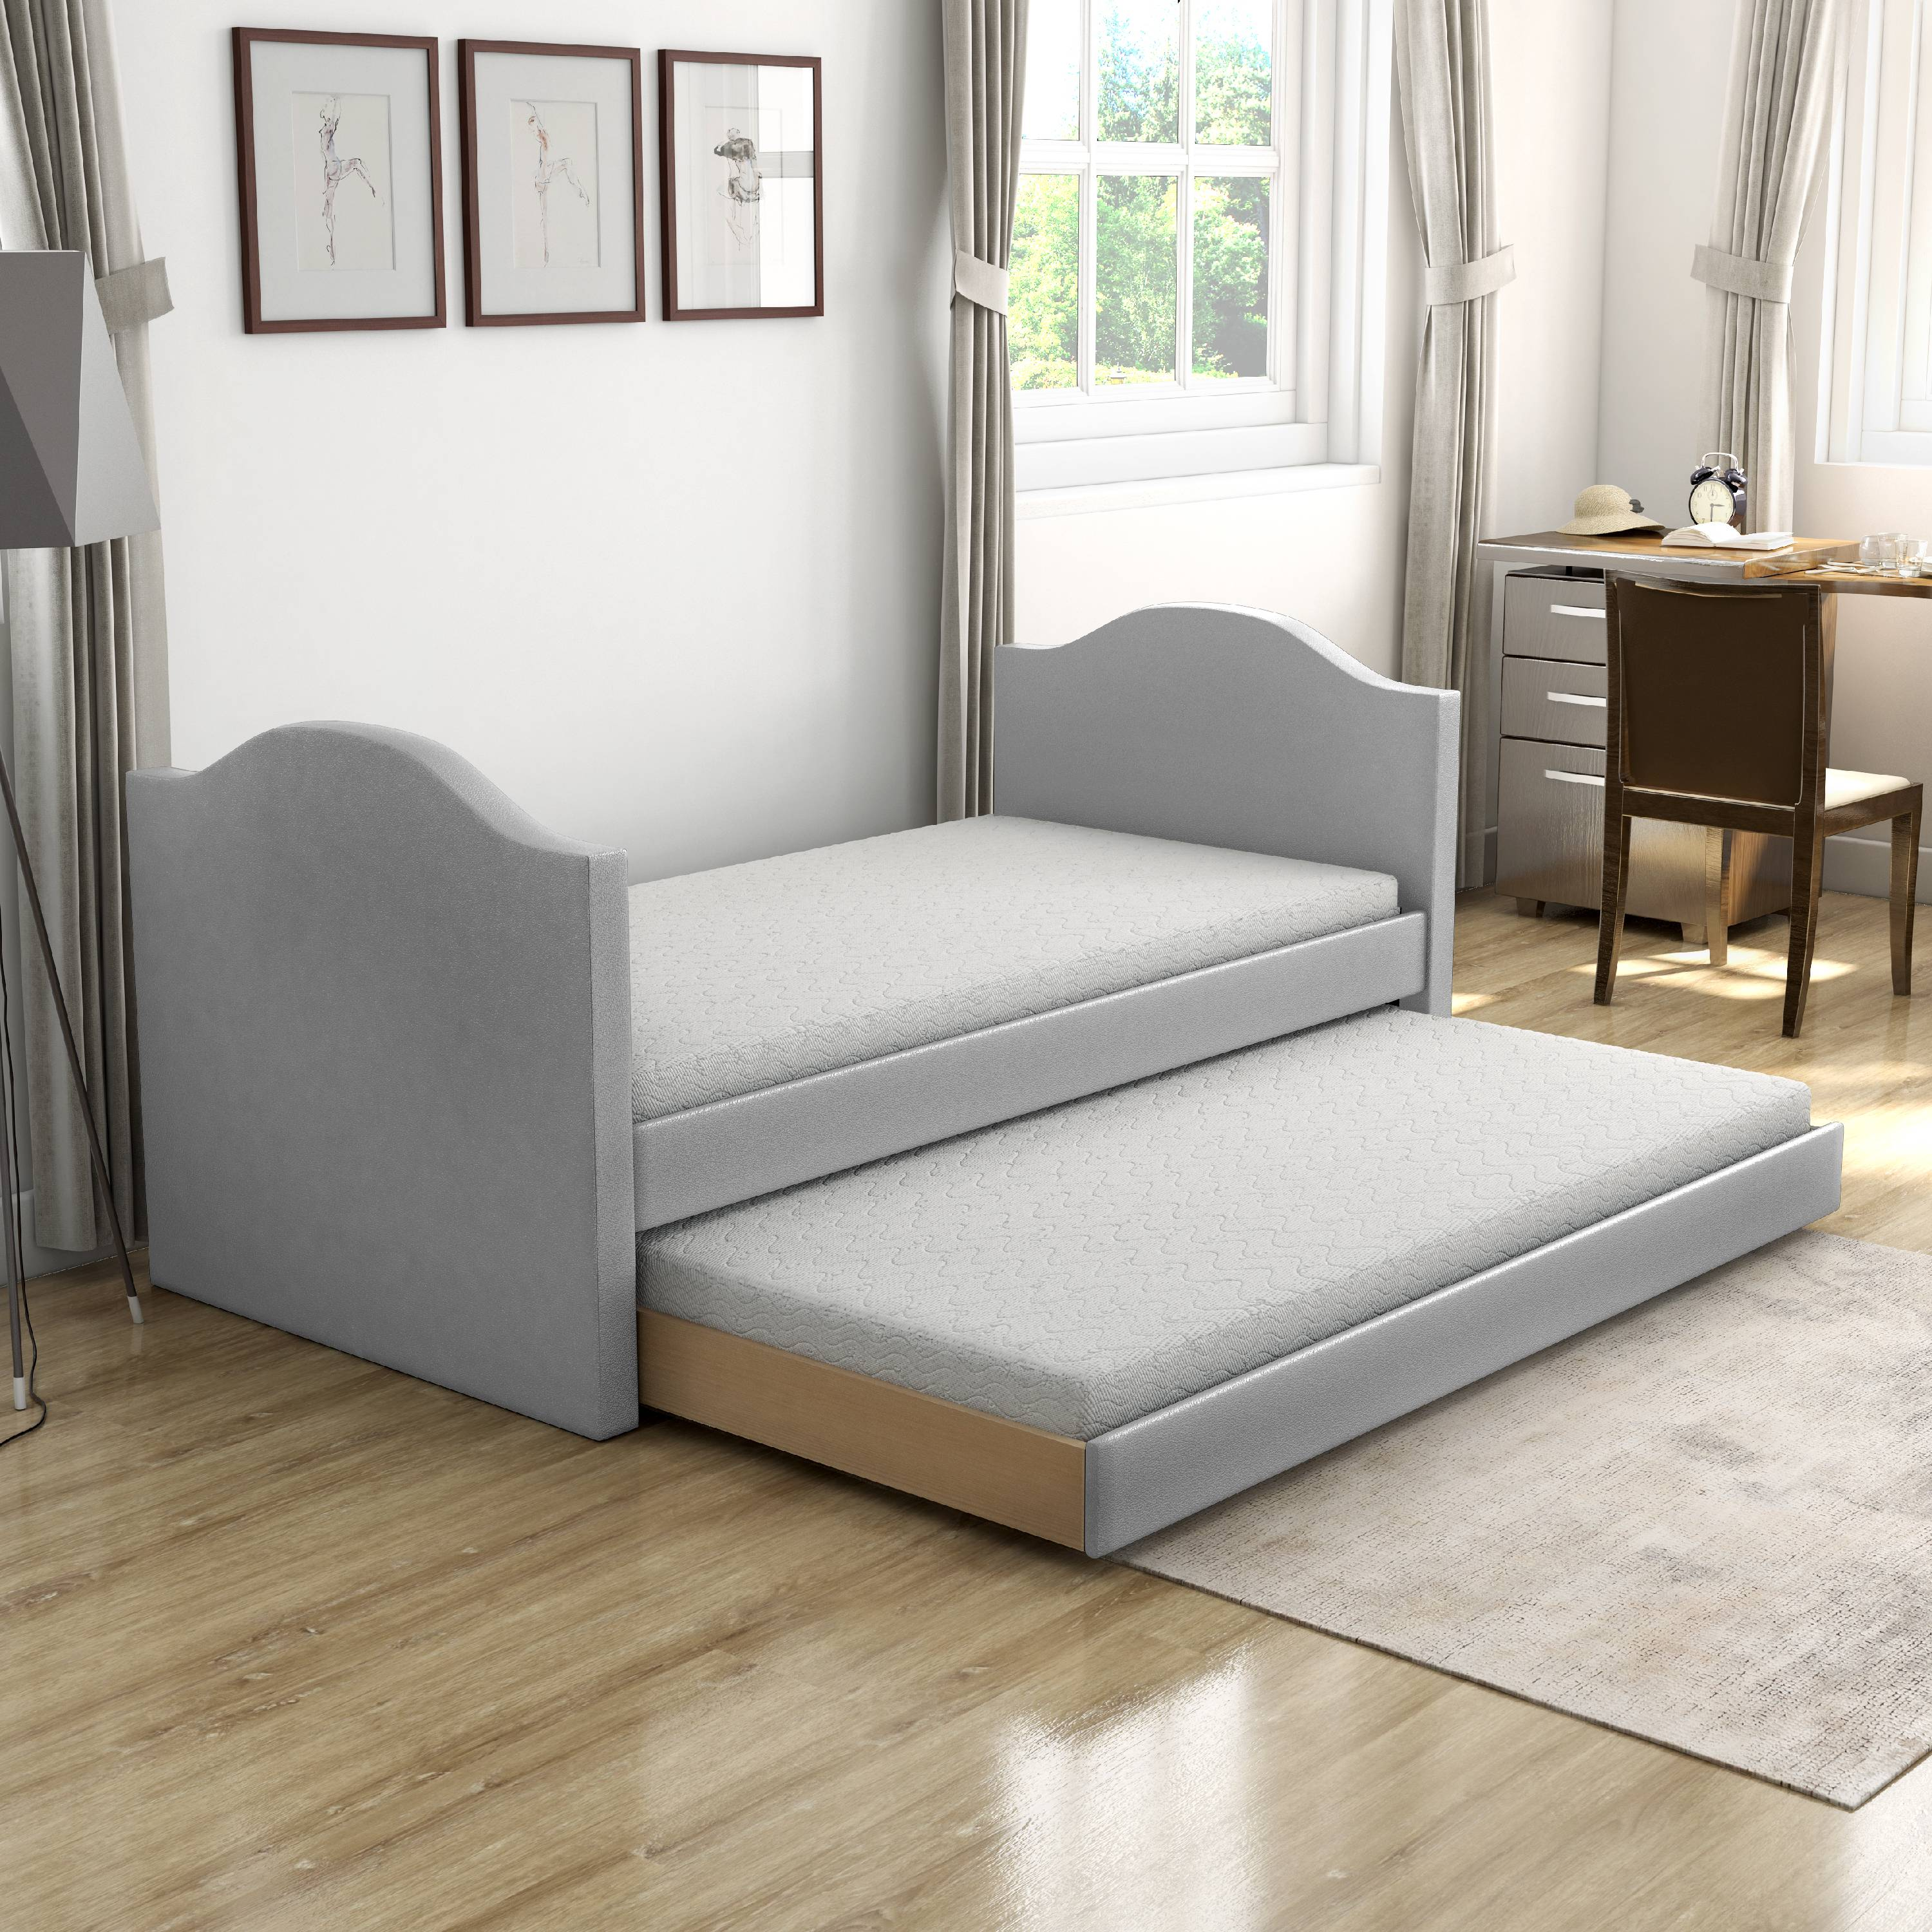 Premier Melissa Gray Upholstered Faux Leather Daybed With Trundle Bed Twin Walmart Com Walmart Com